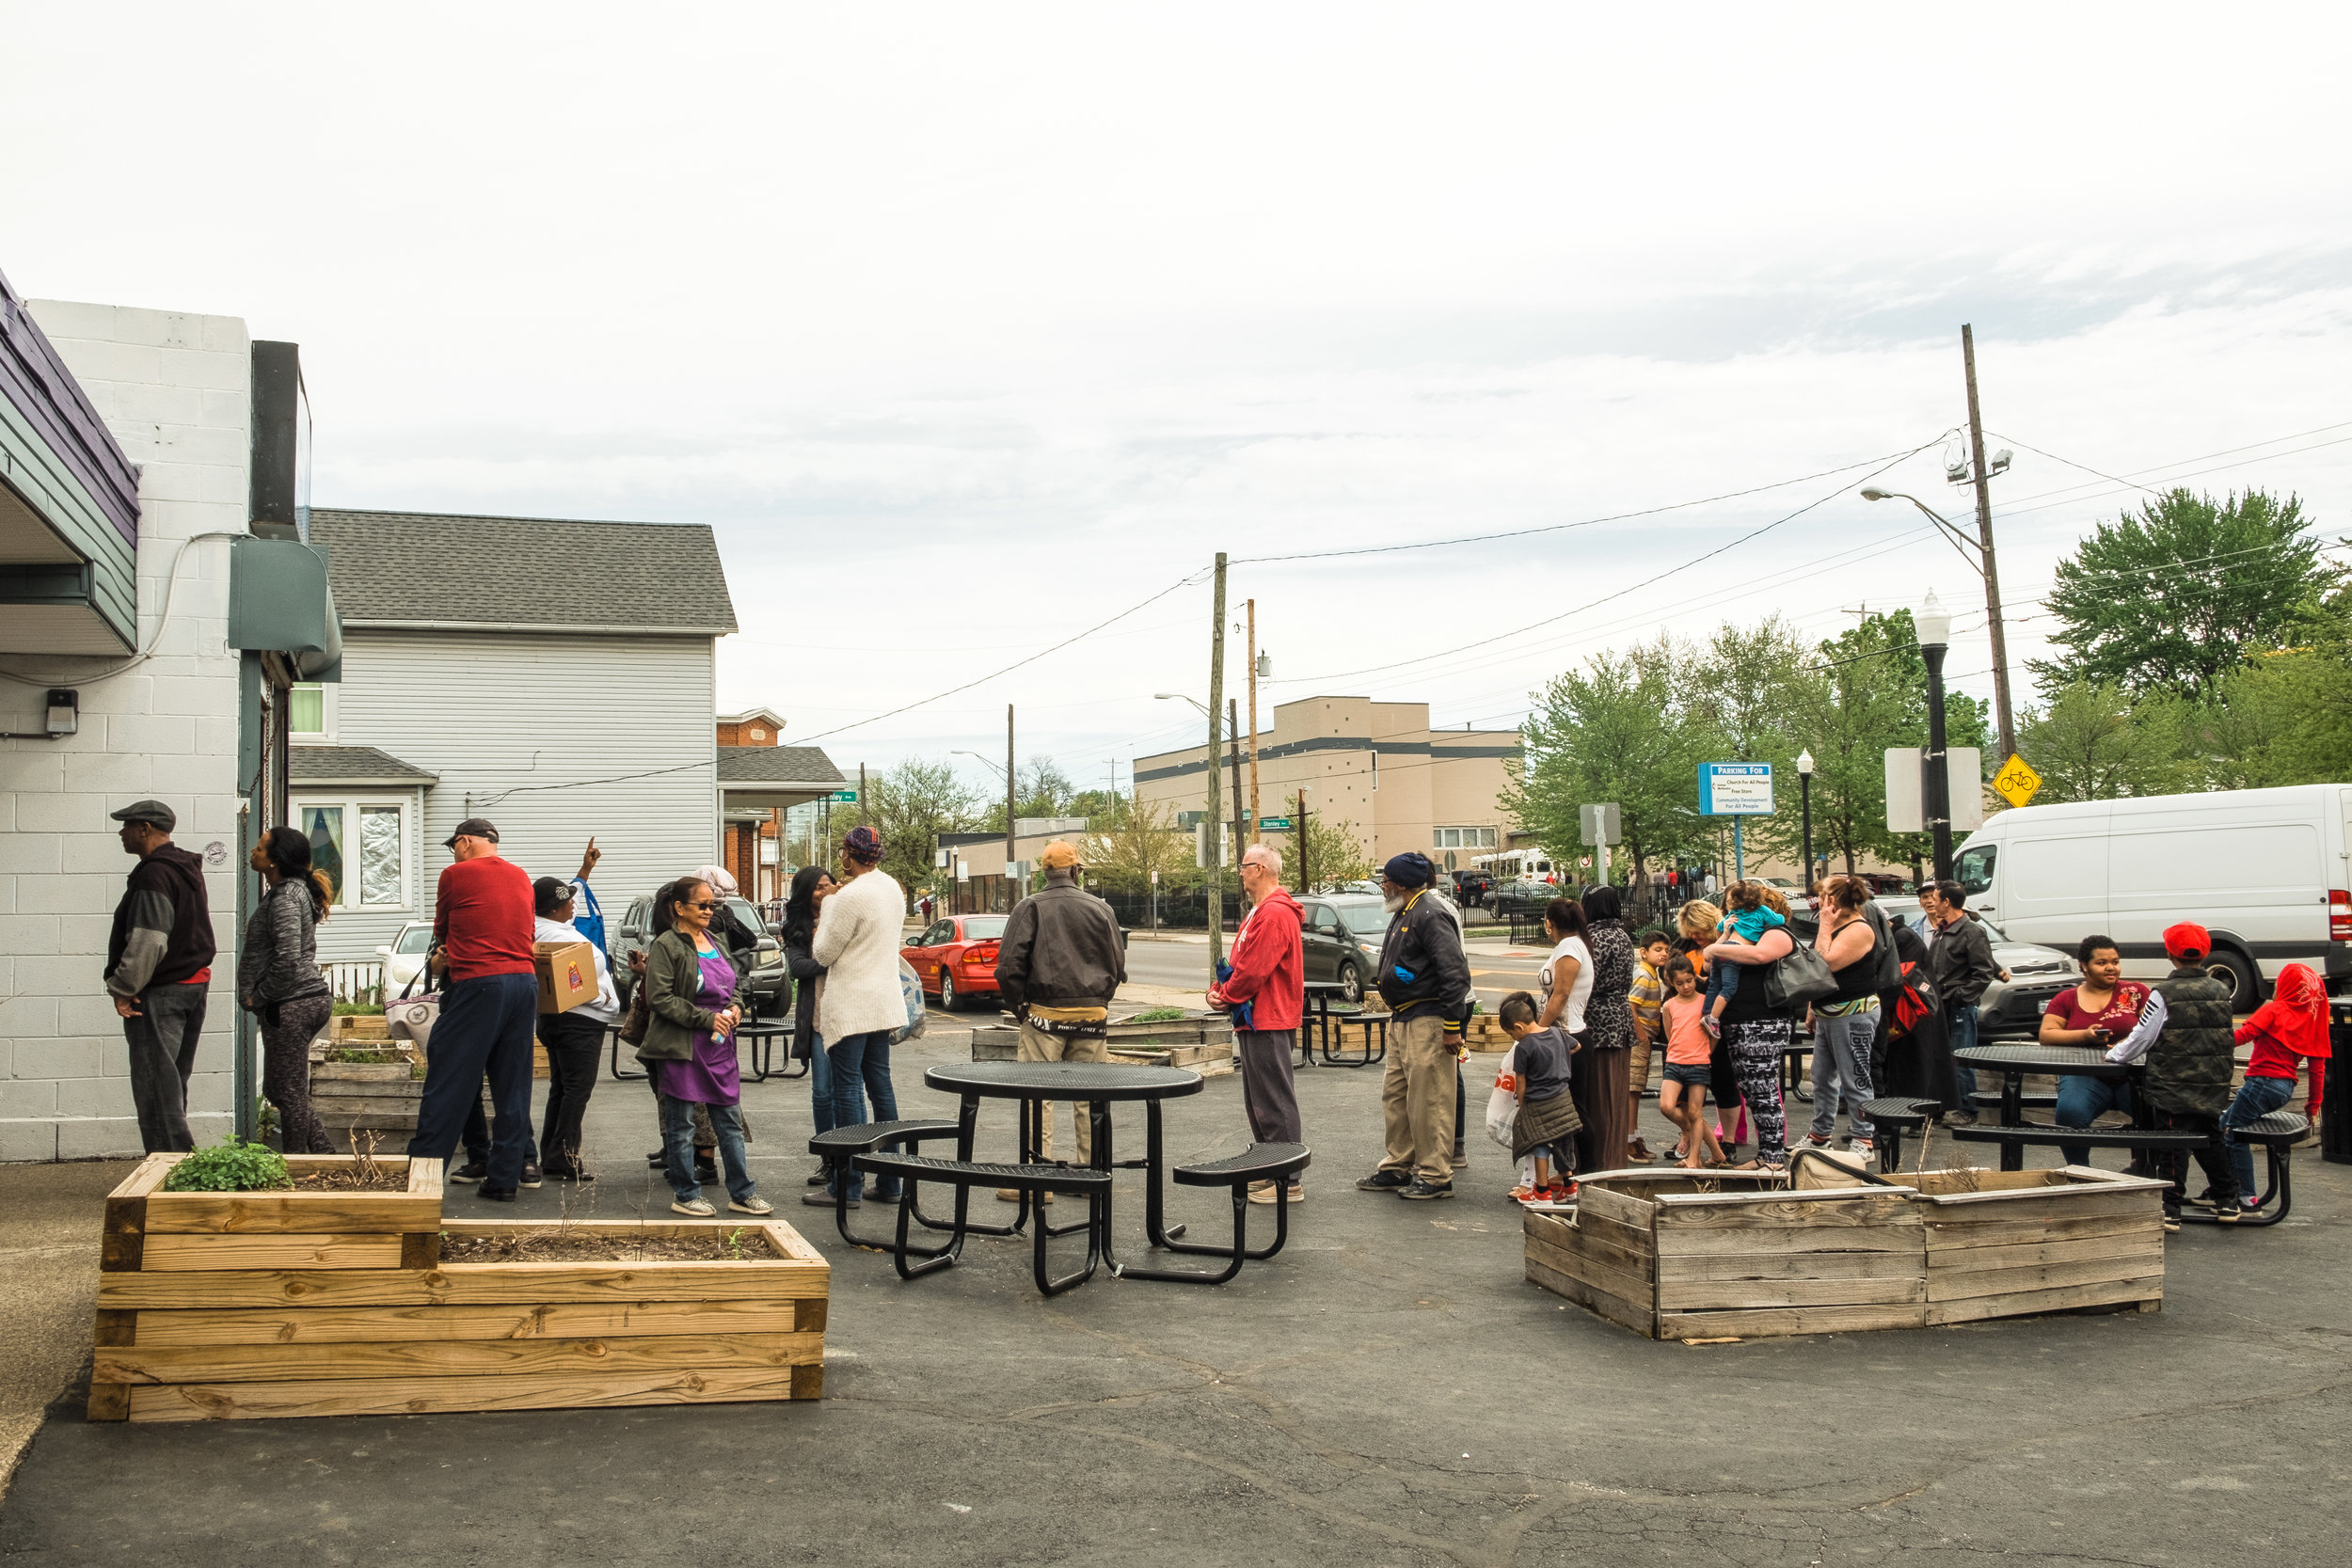 Produce is available to people with earnings up to 200 percent of the federal poverty level. The market opens its doors from 11:00am-5:00pm 5 days a week and every day the line for customers wraps around the building.